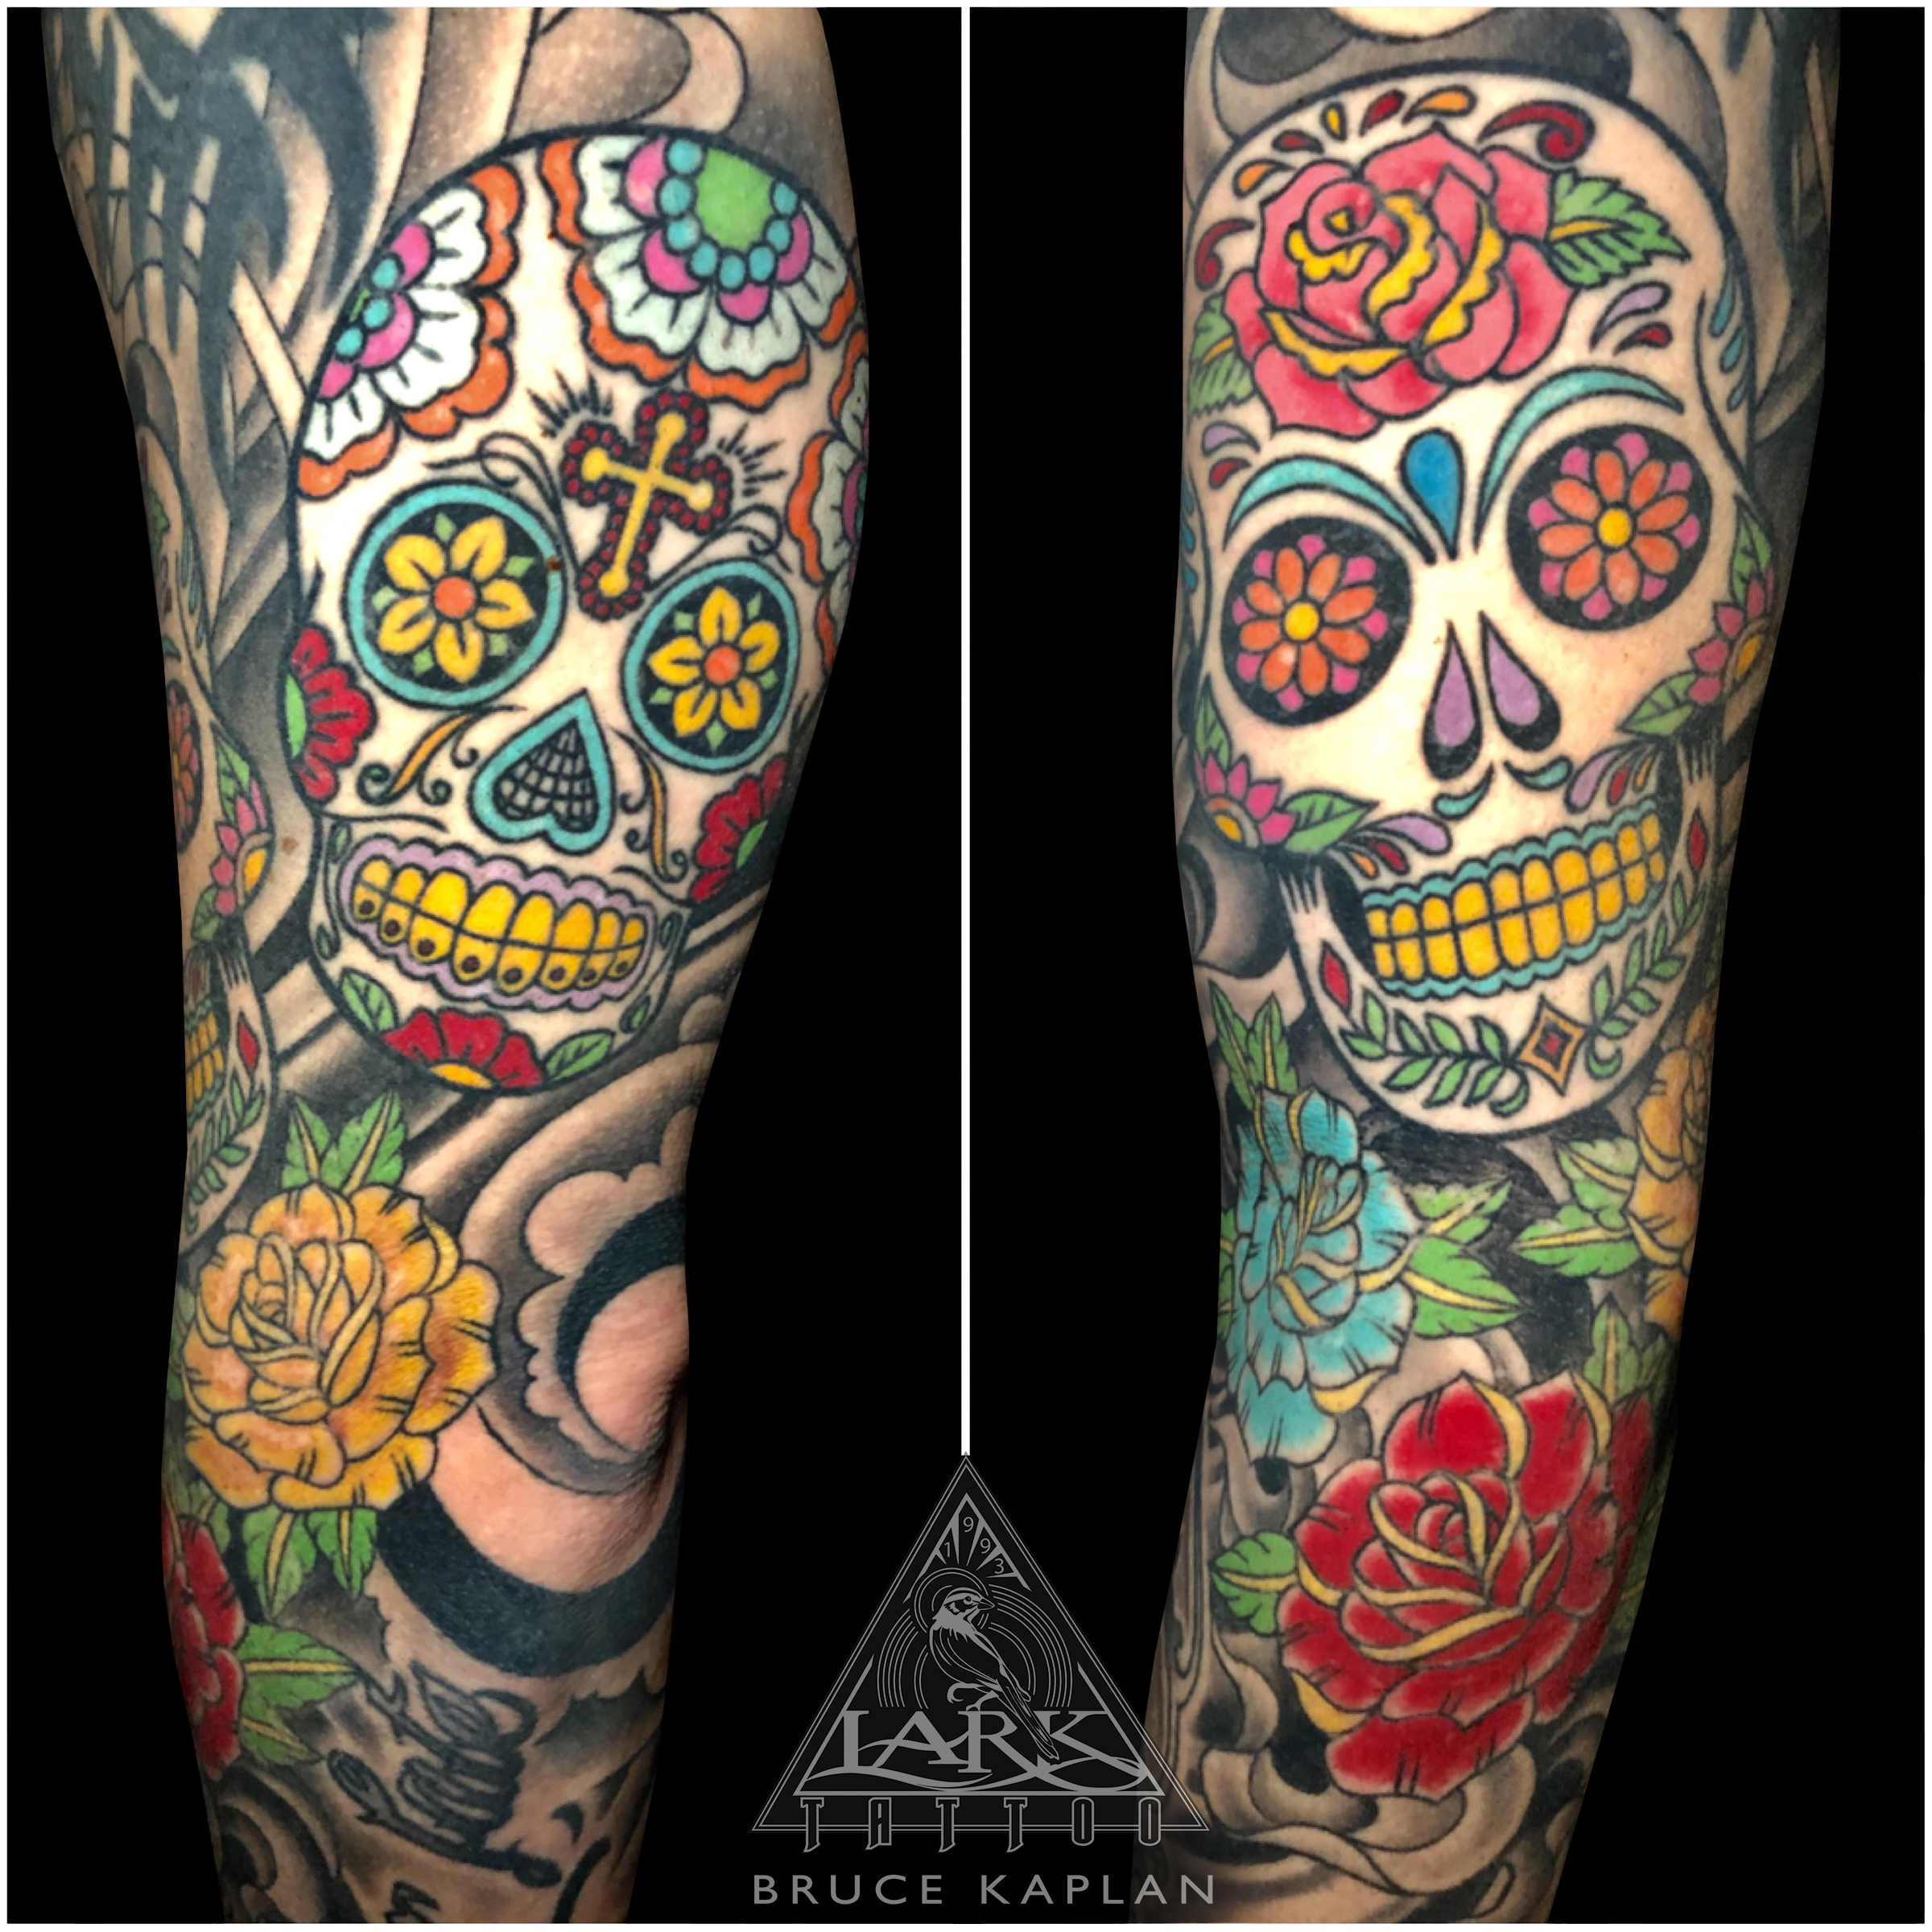 #Calavera #CalaveraTattoo #SugarSkull #SugarSkullTattoo #DayOfTheDead #DayOfTheDeadTattoo #AllSoulsDay #AllSoulsDayTattoo #DíaDeMuertos #DíaDeMuertosTattoo #DiaDeMuertos #DiaDeMuertosTattoo #Skull #SkullTattoo #Rose #RoseTattoo #Cross #CrossTattoo #ArmTattoo #TattooSleeve #ColorTattoo #LarkTattoo #tattoo #tattoos #tat #tats #tatts #tatted #tattedup #tattoist #tattooed #inked #inkedup #ink #tattoooftheday #amazingink #bodyart #larktattoos #larktattoowestbury #westbury #longisland #NY #NewYork #usa #art